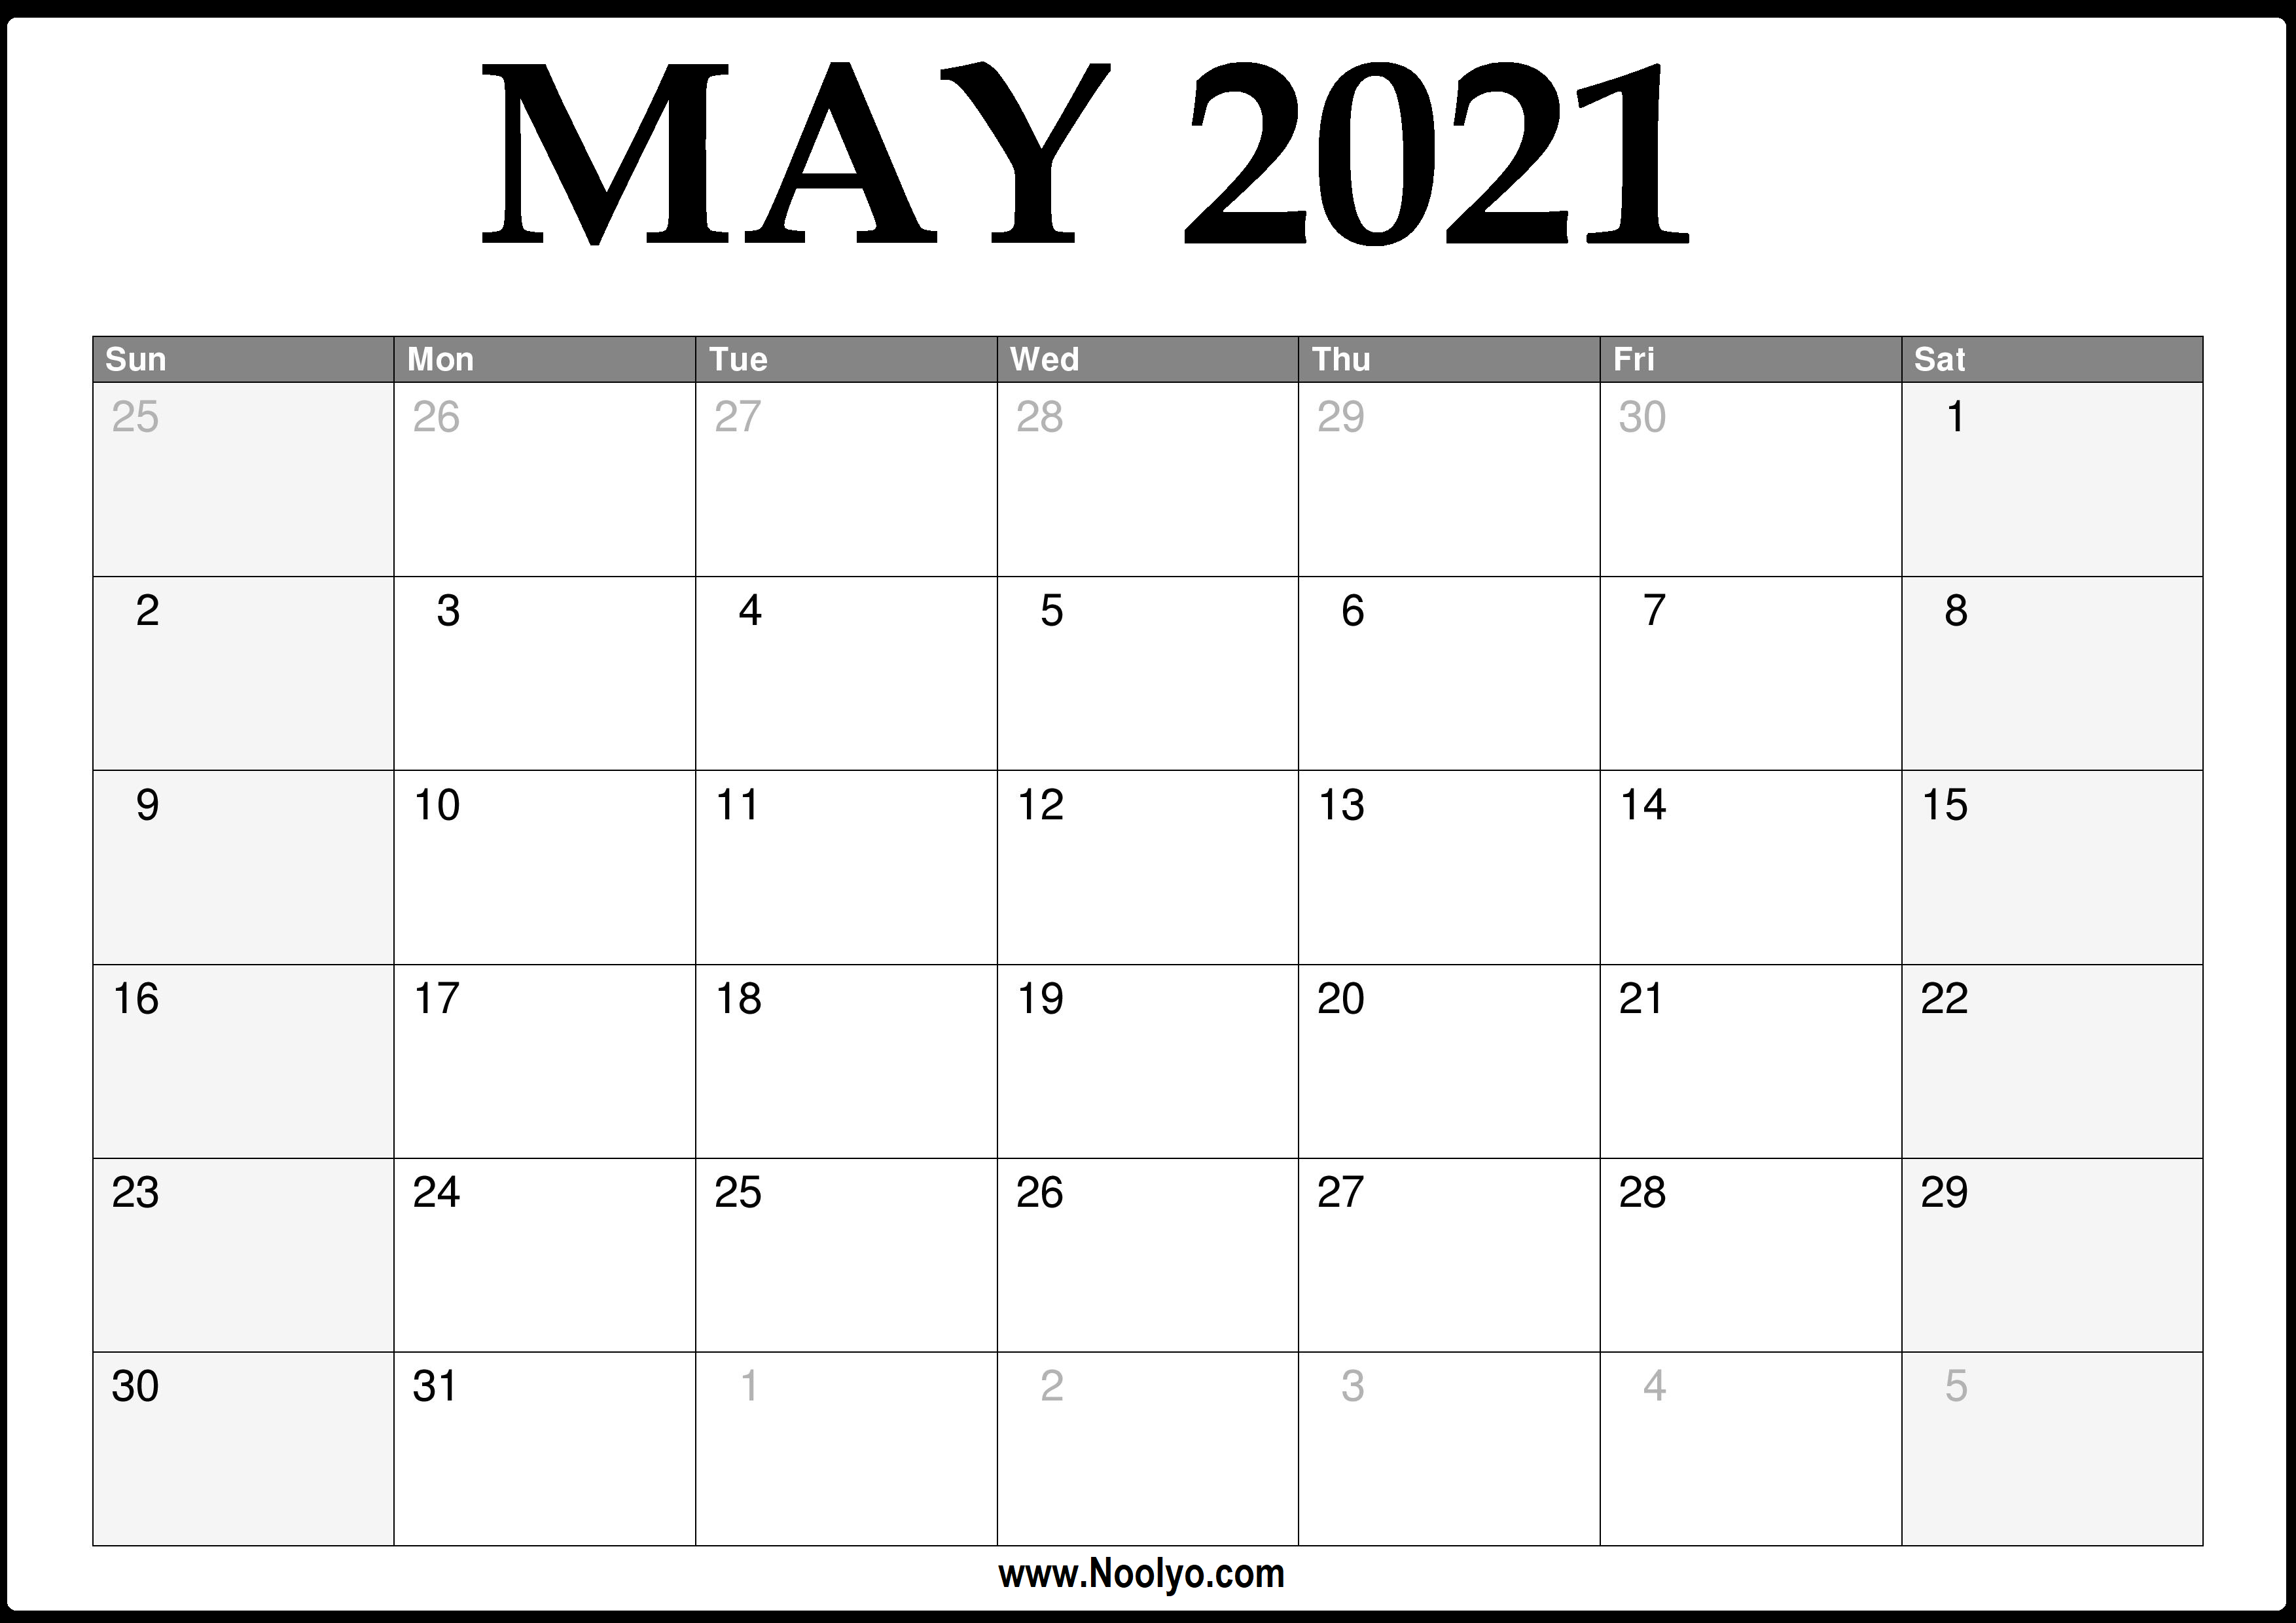 2021 May Calendar Printable – Download Free – Noolyo